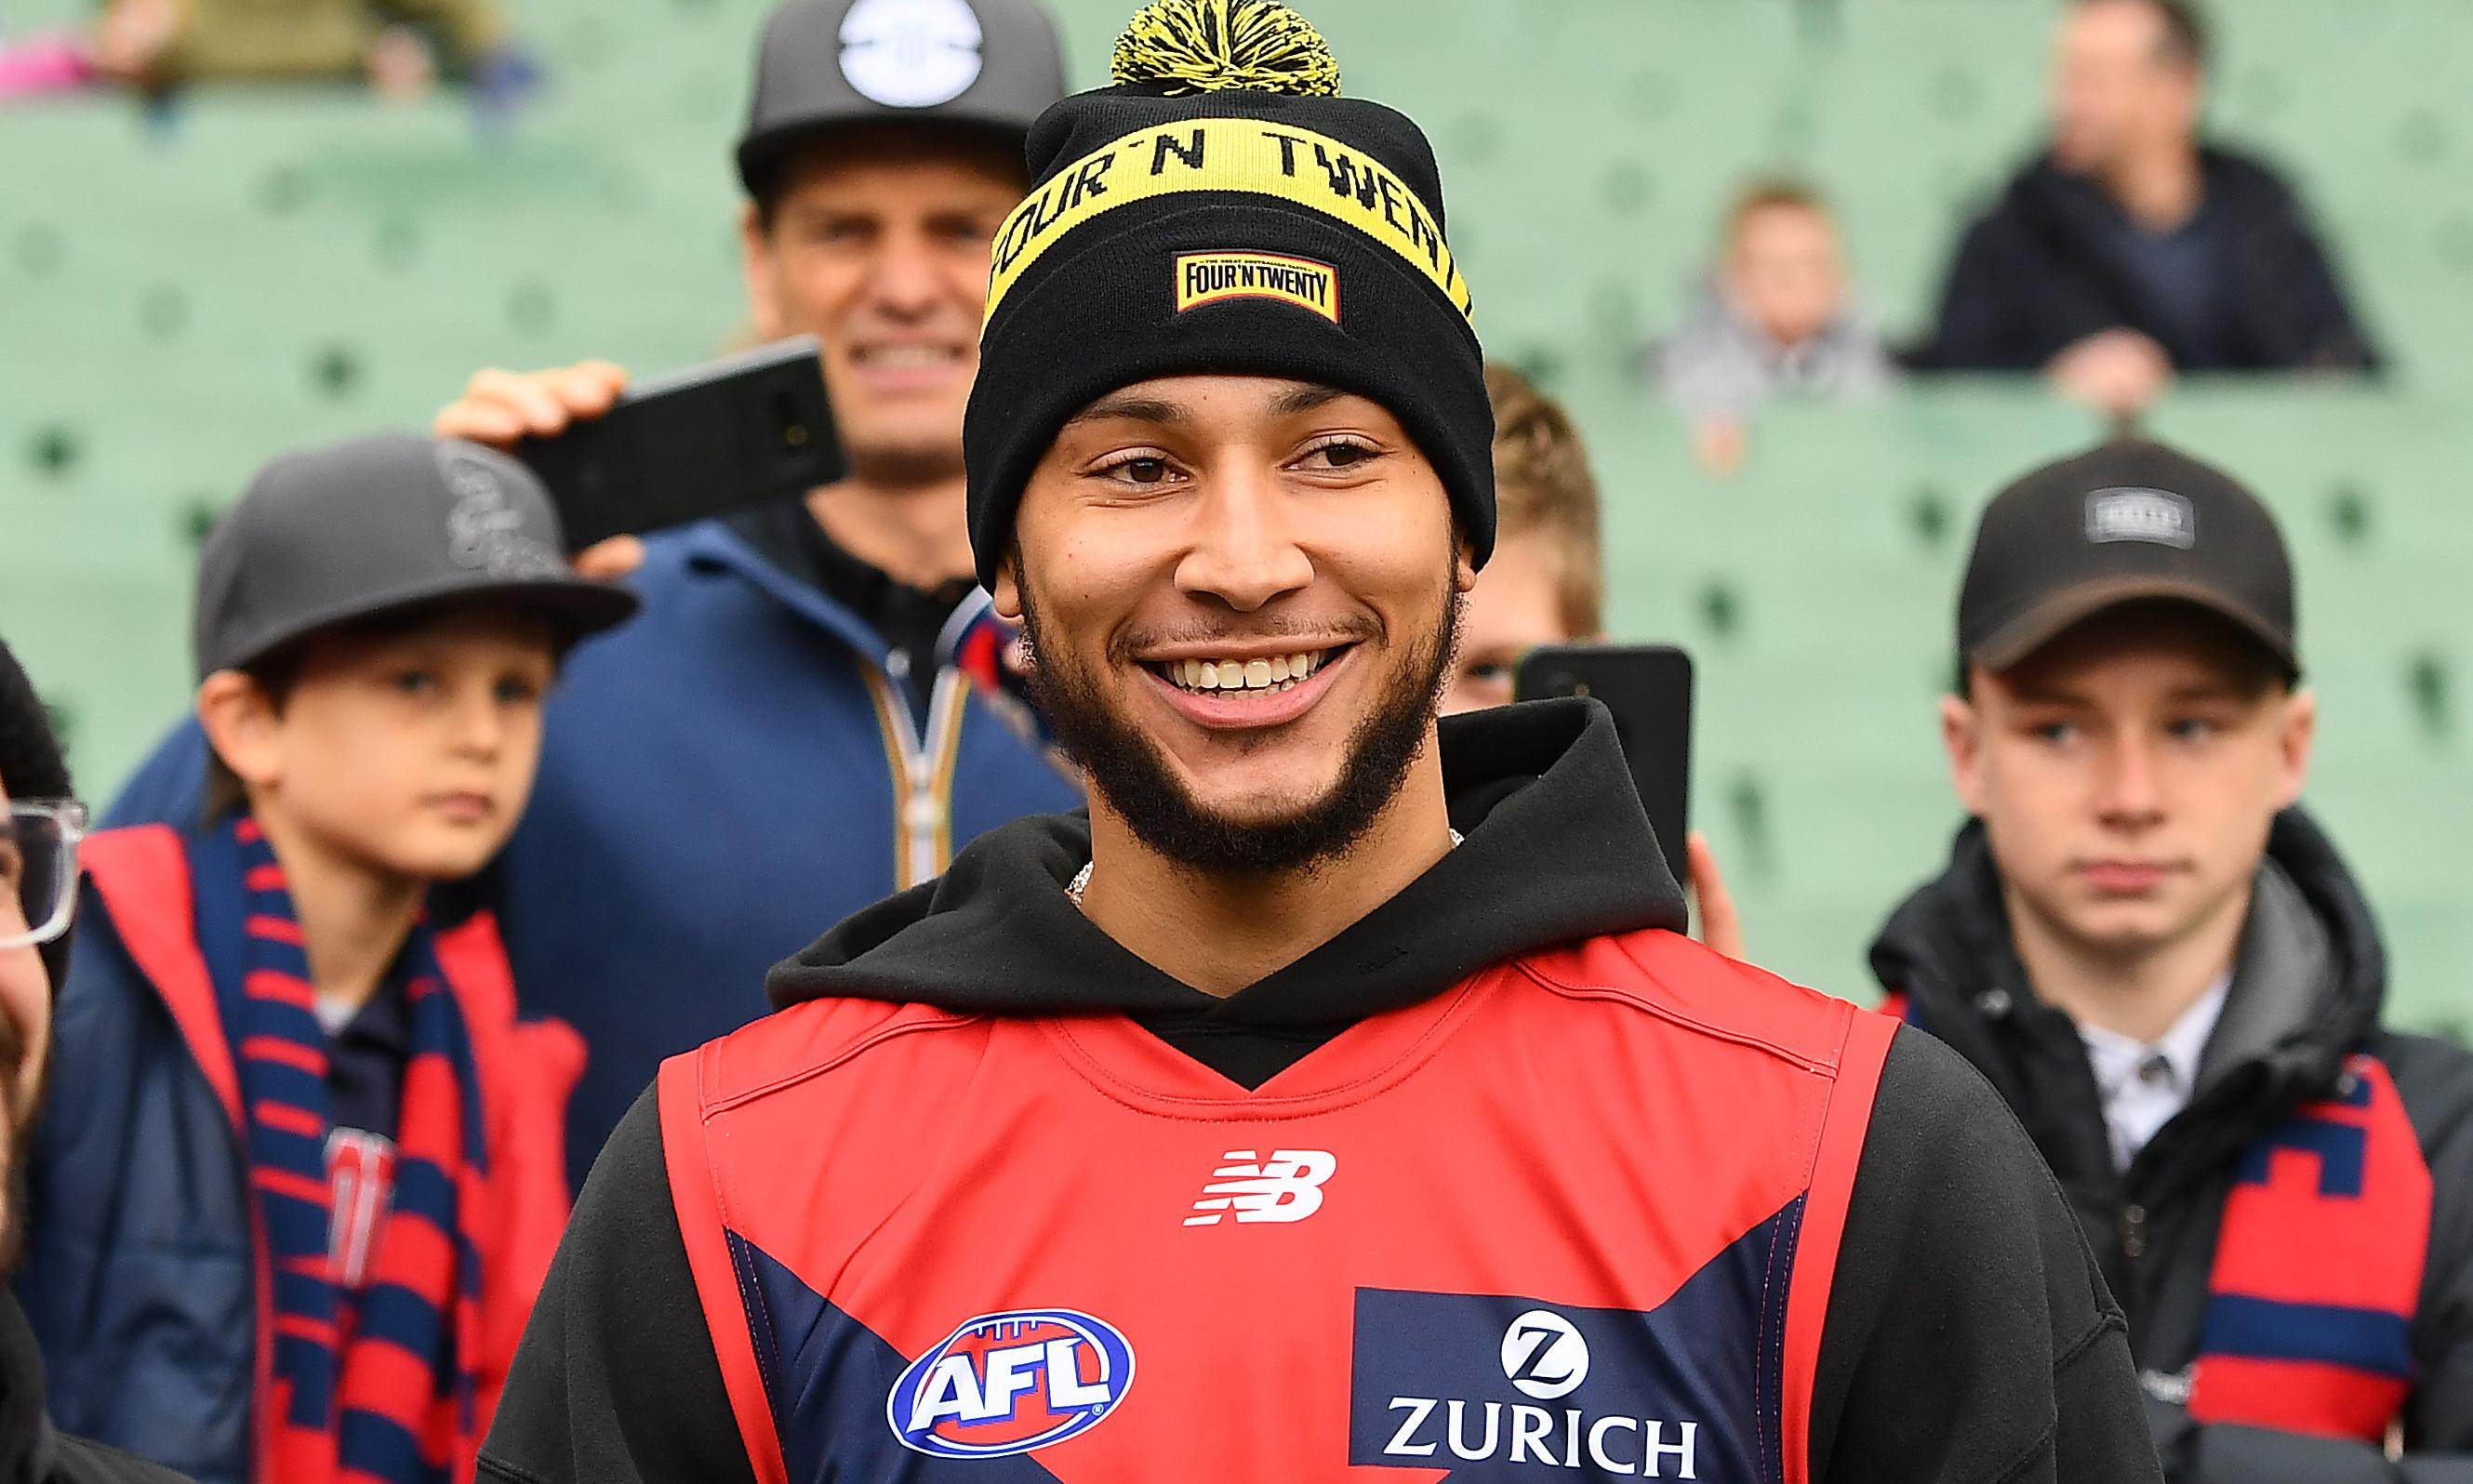 Young, black and rich: why does sporting success push so many buttons in Australia?